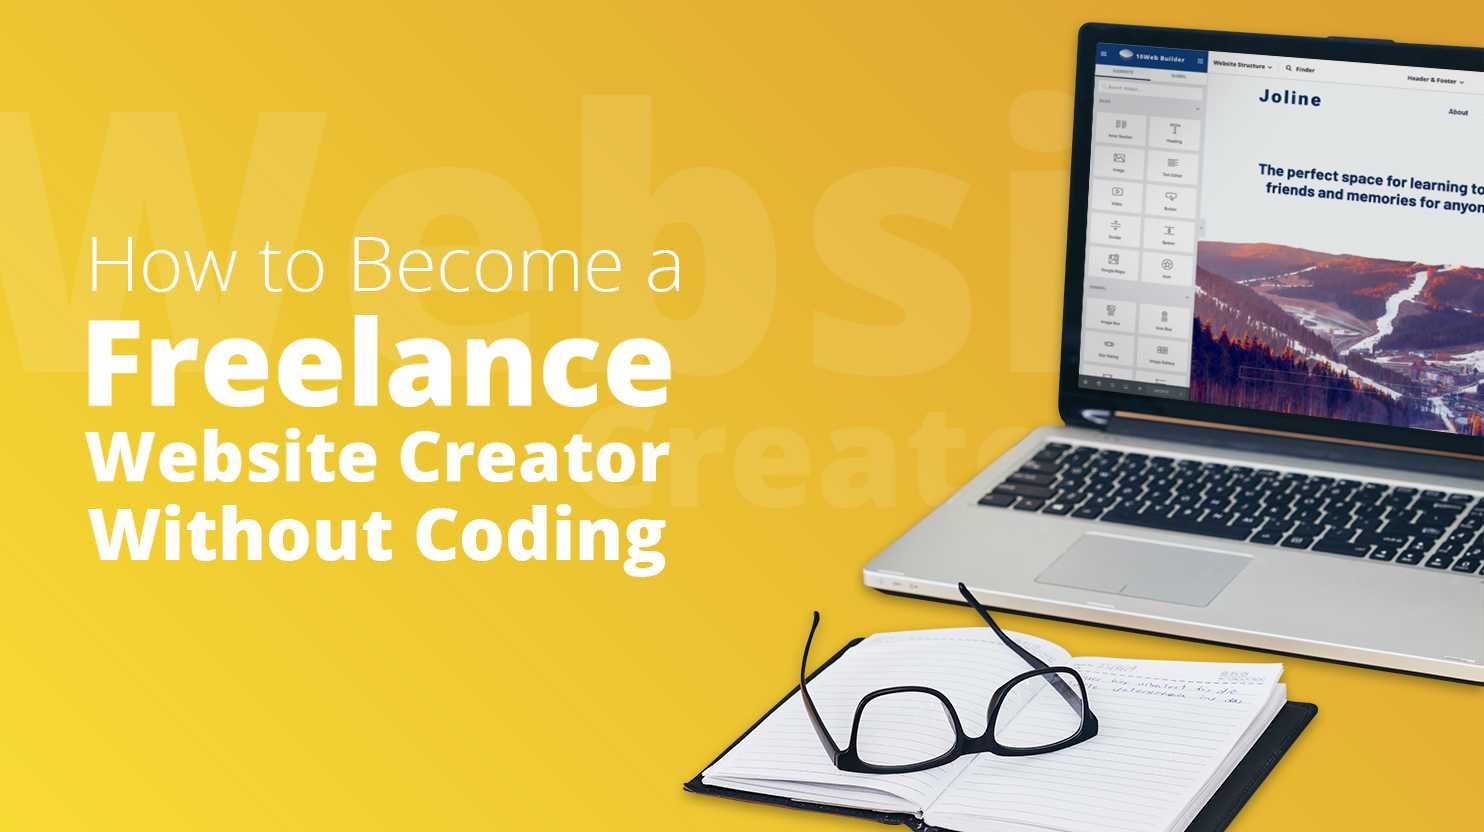 How to Become a Freelance Website Creator without Coding